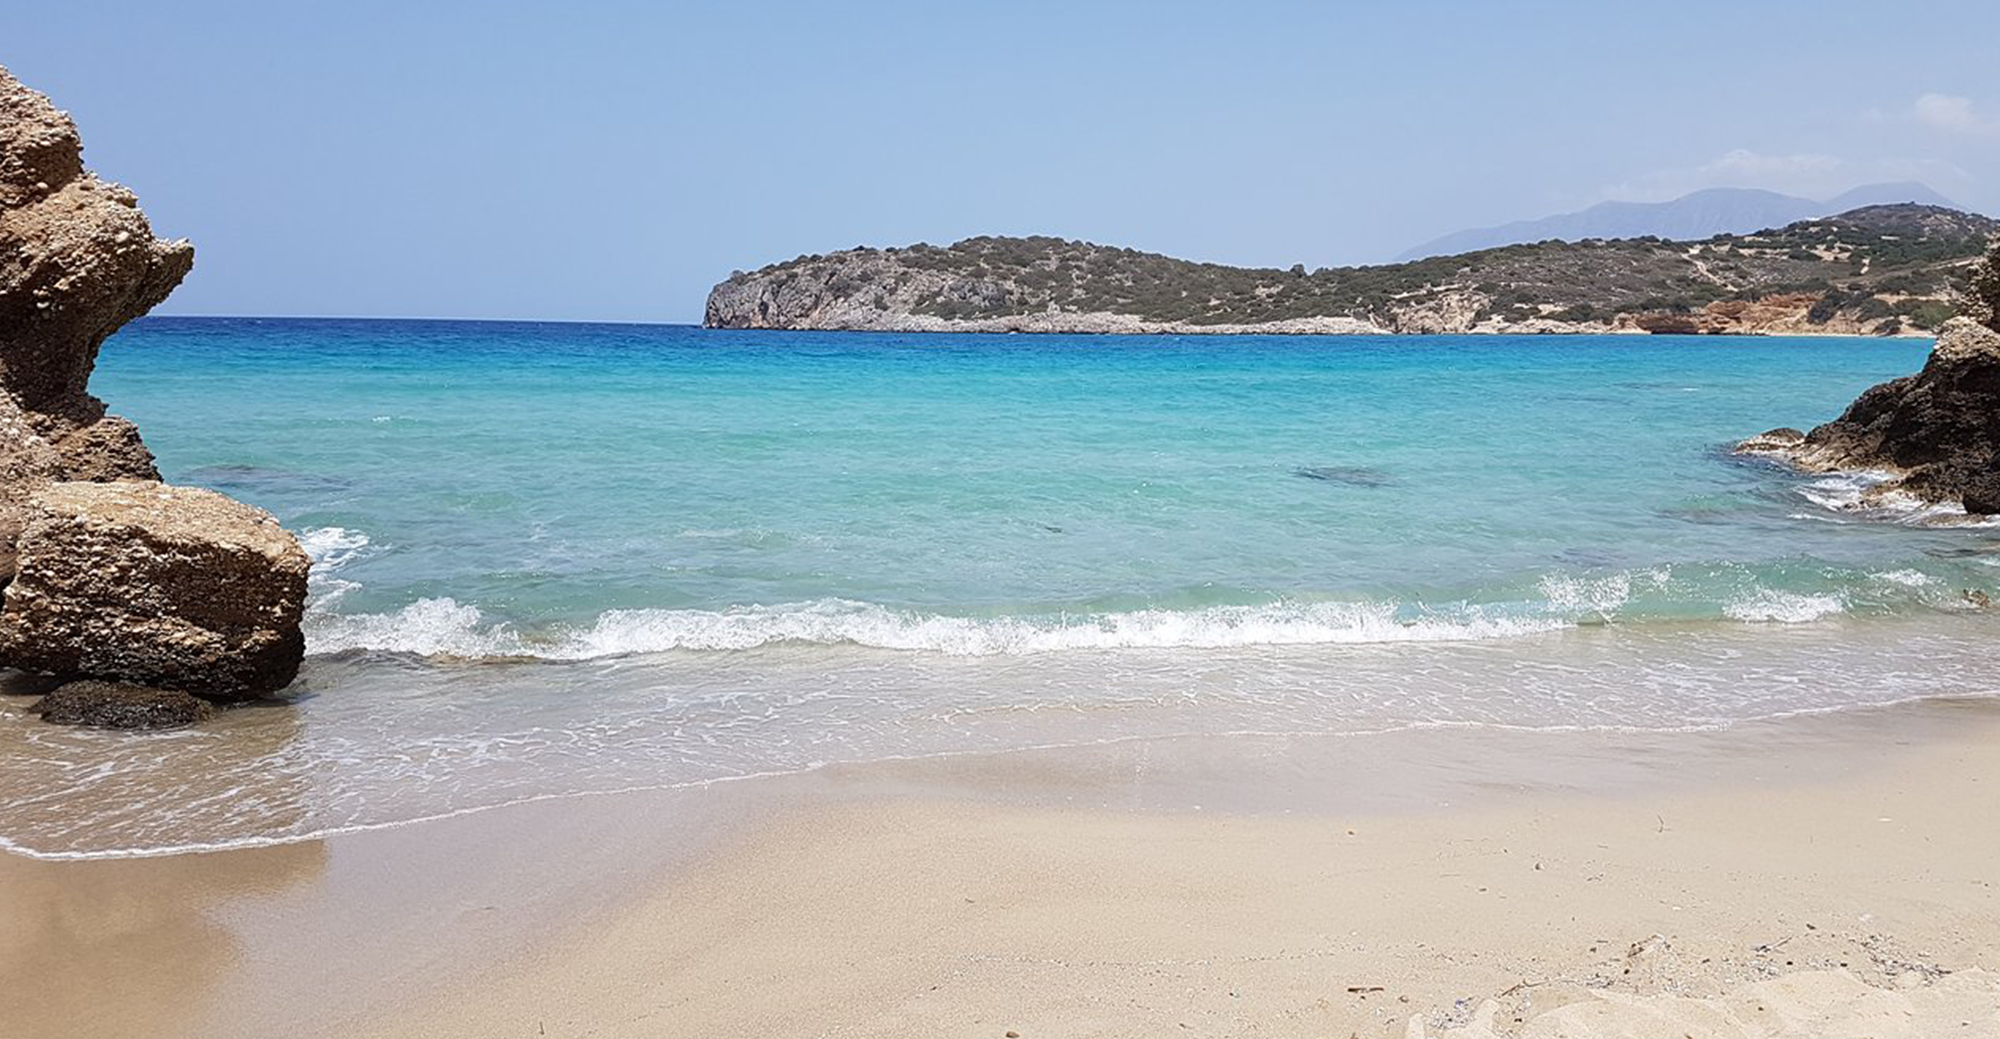 Vulisma beach in crete